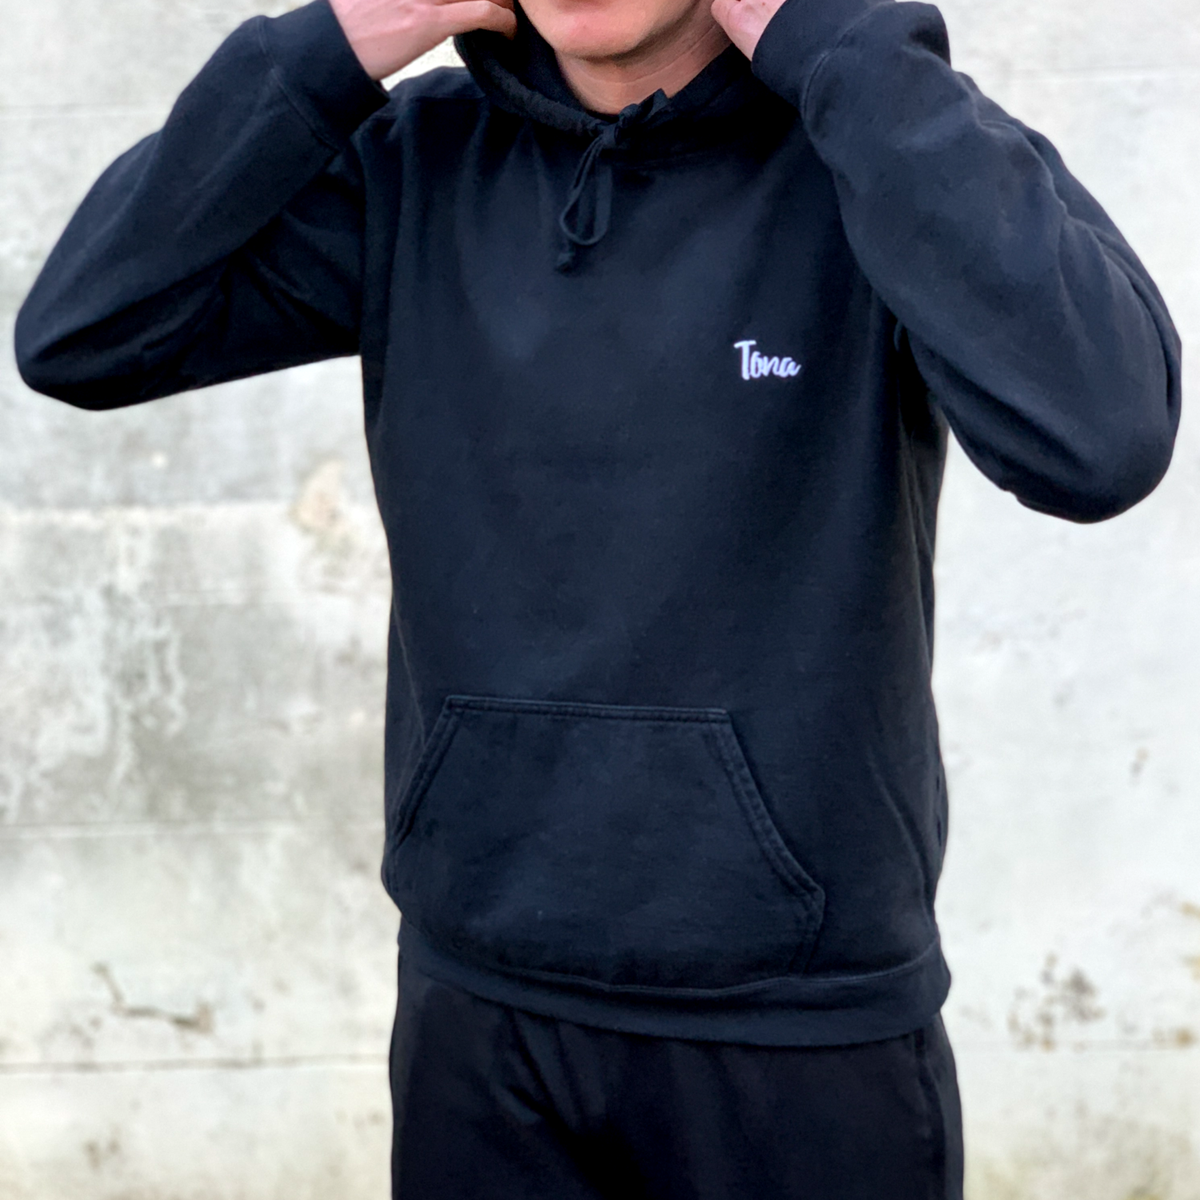 Image of Tona Workout Hoody